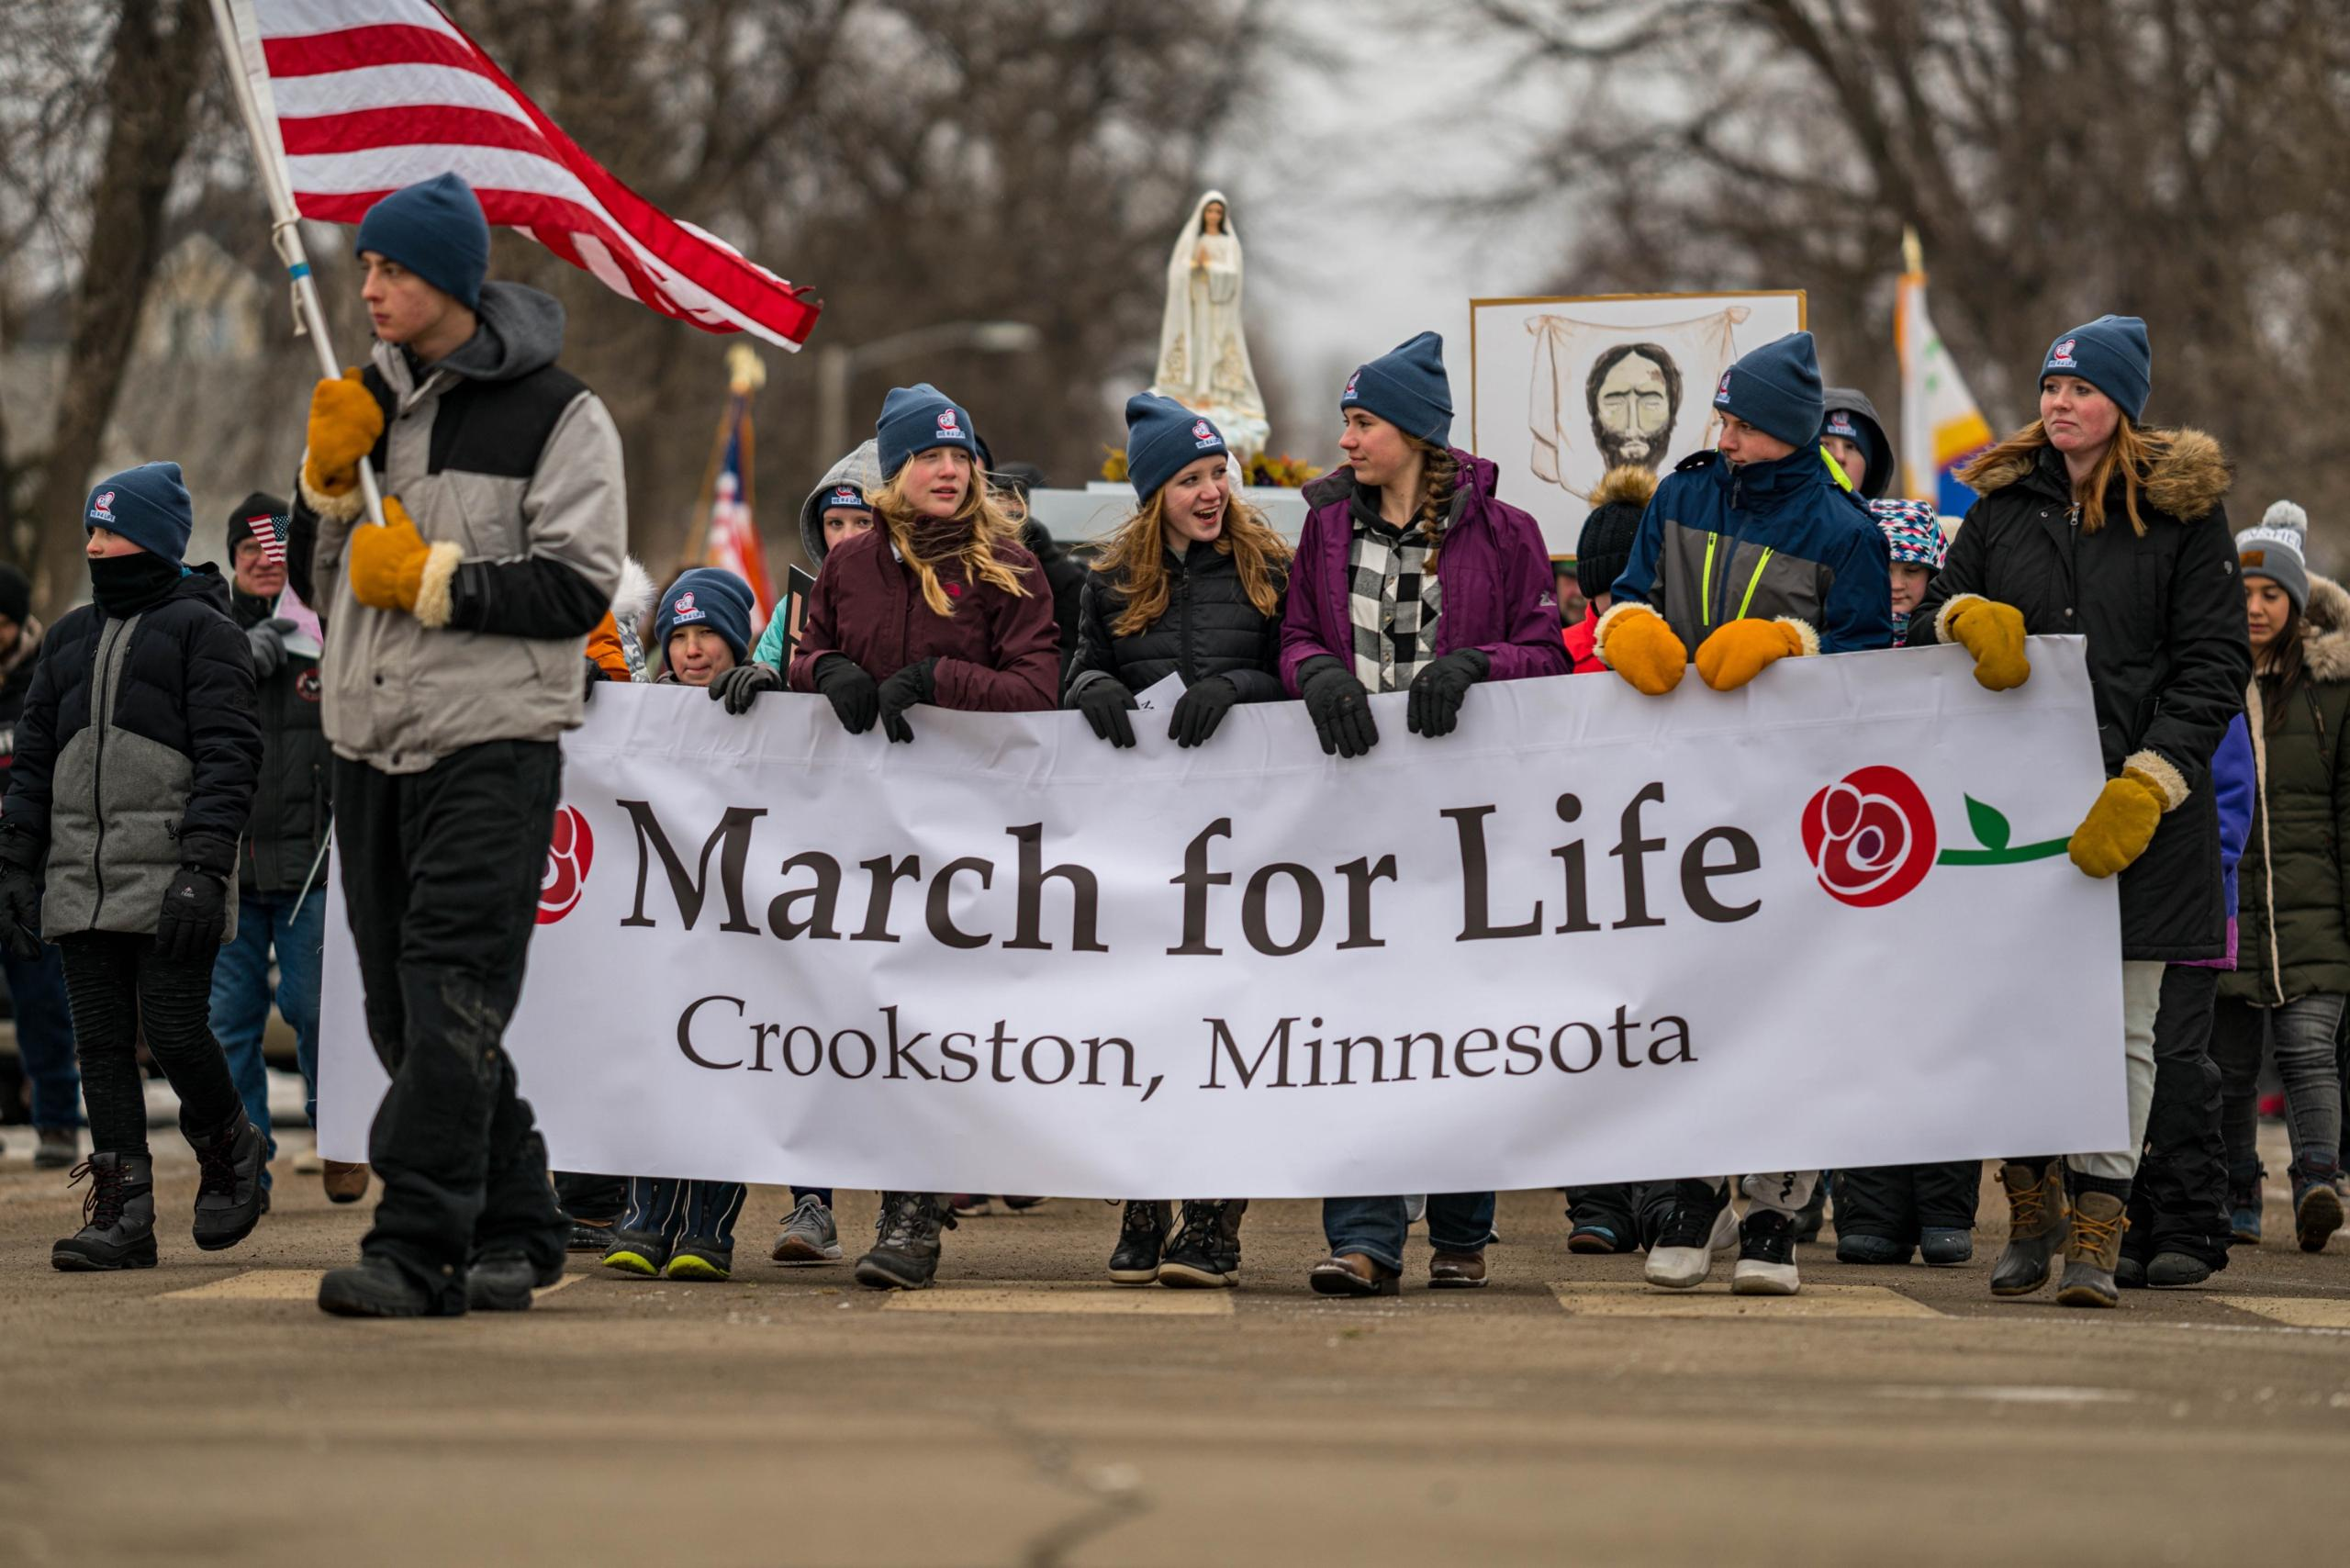 march for life 2021 #1